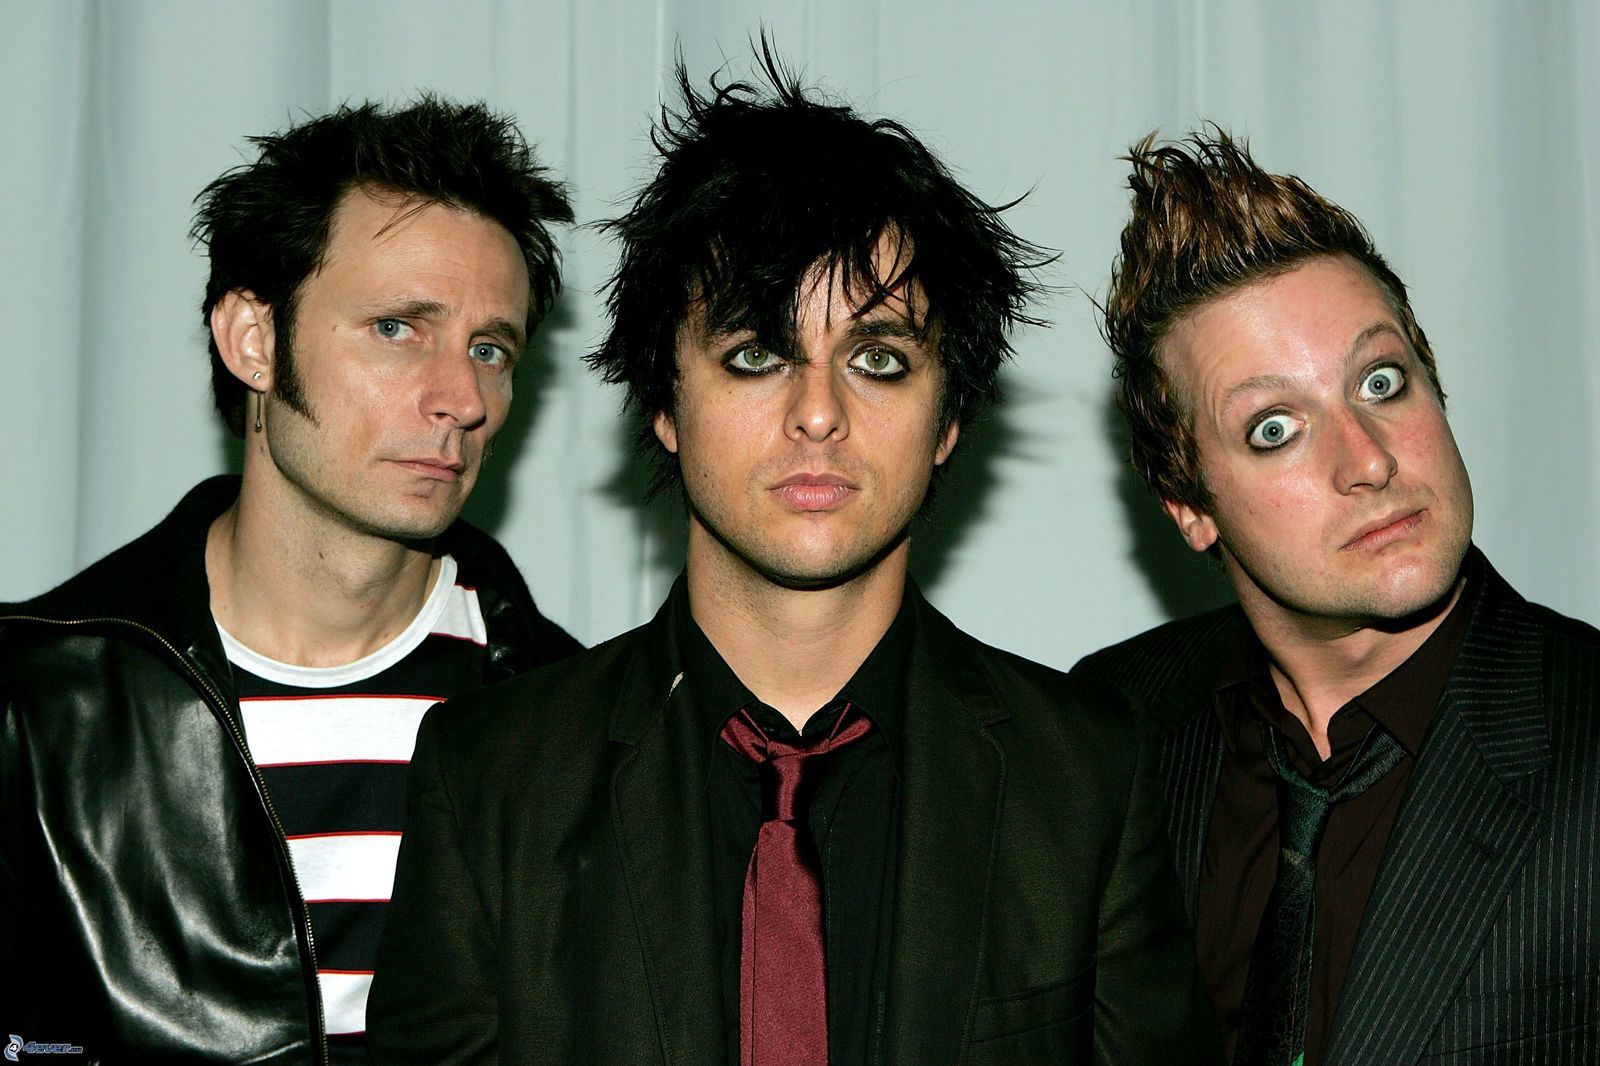 Billie Joe Armstrong, Mike Dirnt and Tré Cool: Green Day